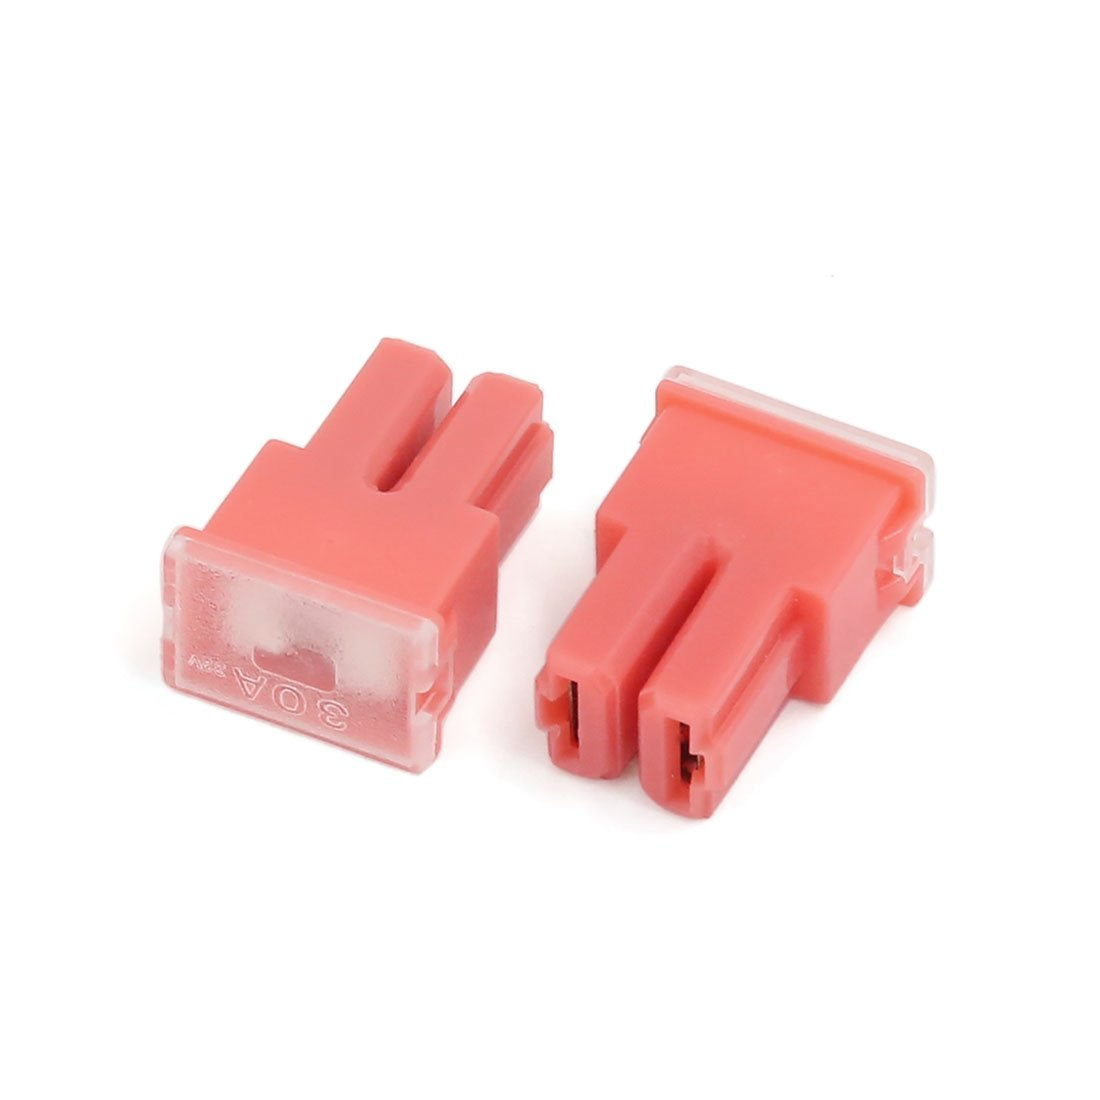 uxcell 50A 32V Car Pacific Type PAL Female Terminals Slow Blow Slot Fuses Red 5pcs